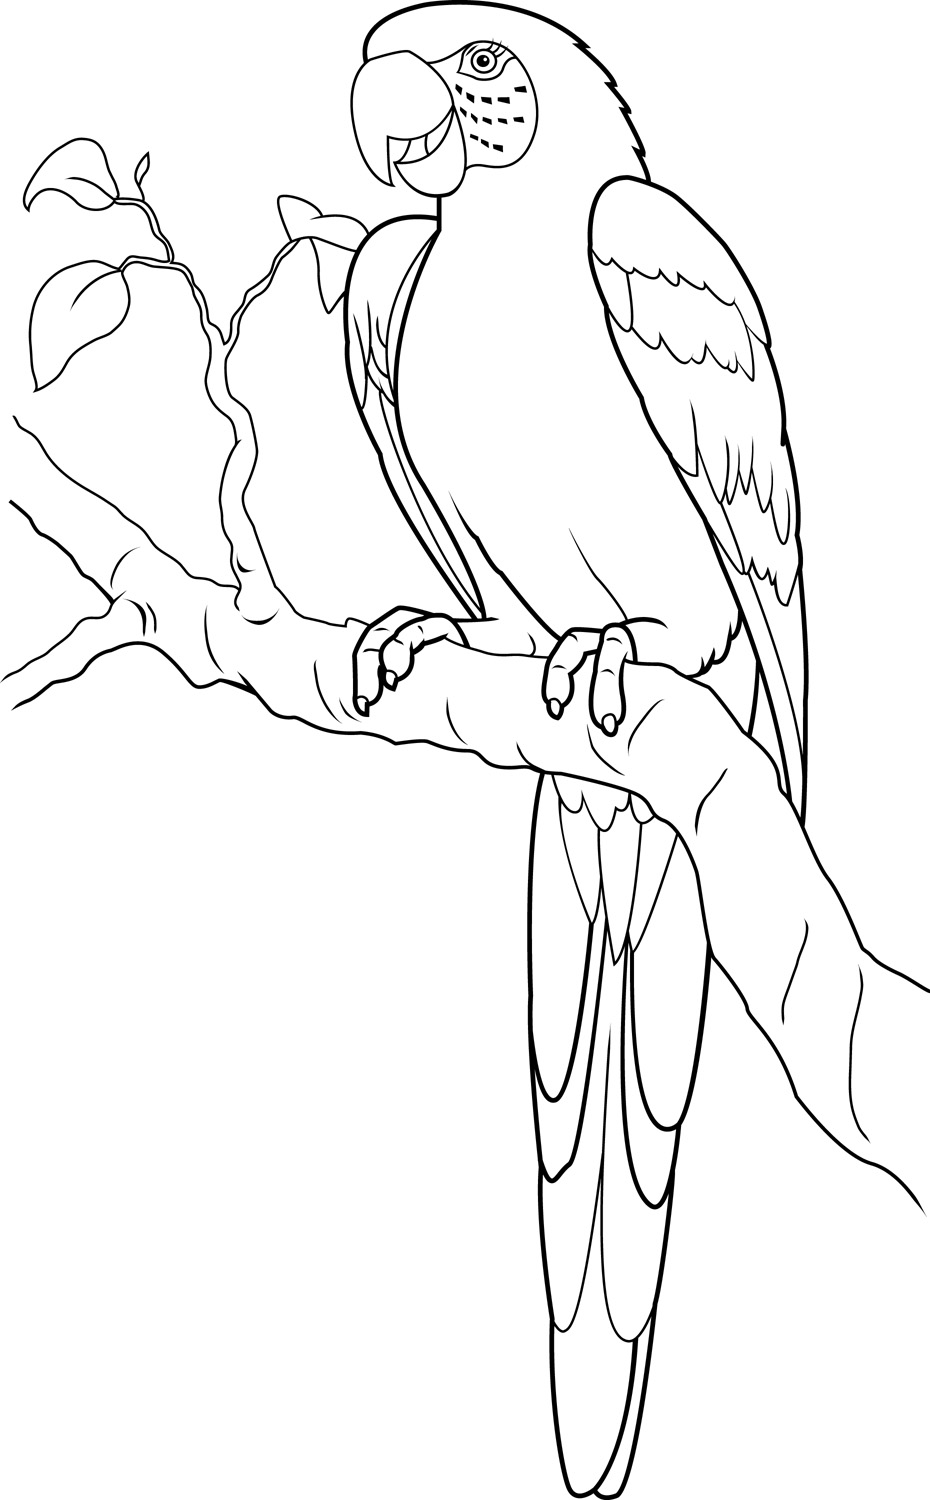 Parrot Line Drawing at GetDrawings.com | Free for personal use ...